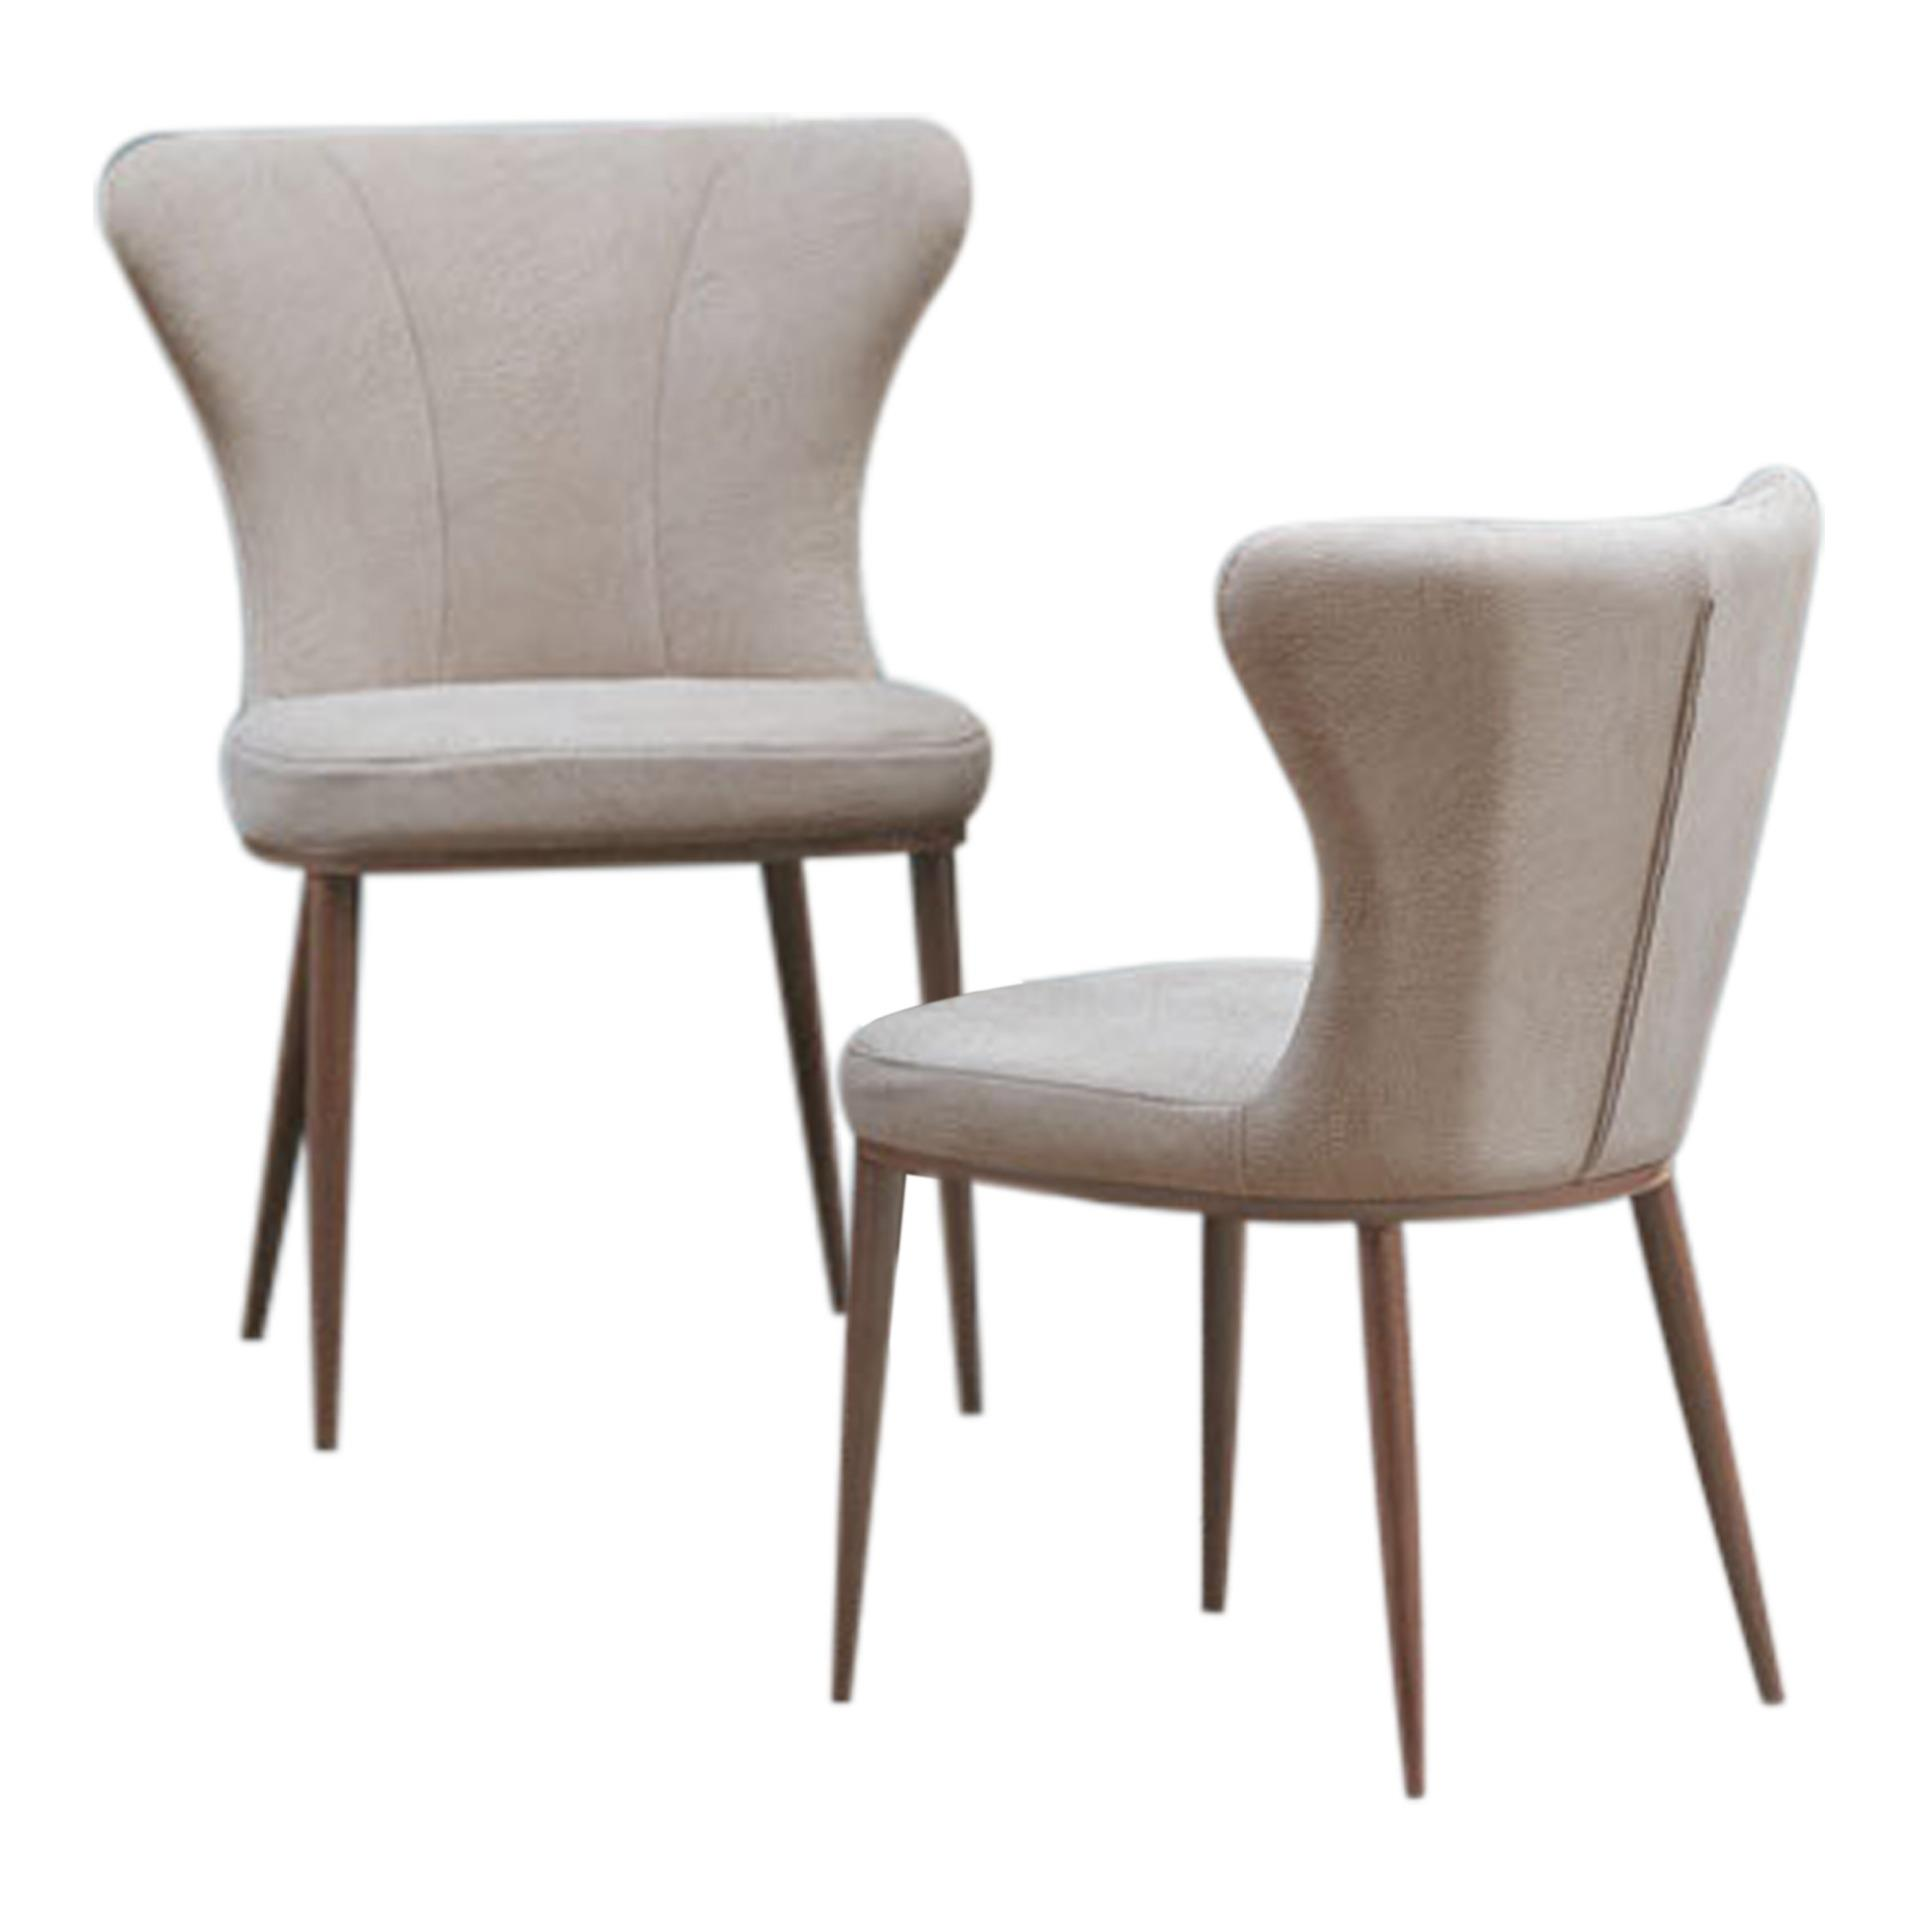 Marine Dining Chairs_Set of 2 (FREE DELIVERY)(FREE ASSEMBLY)